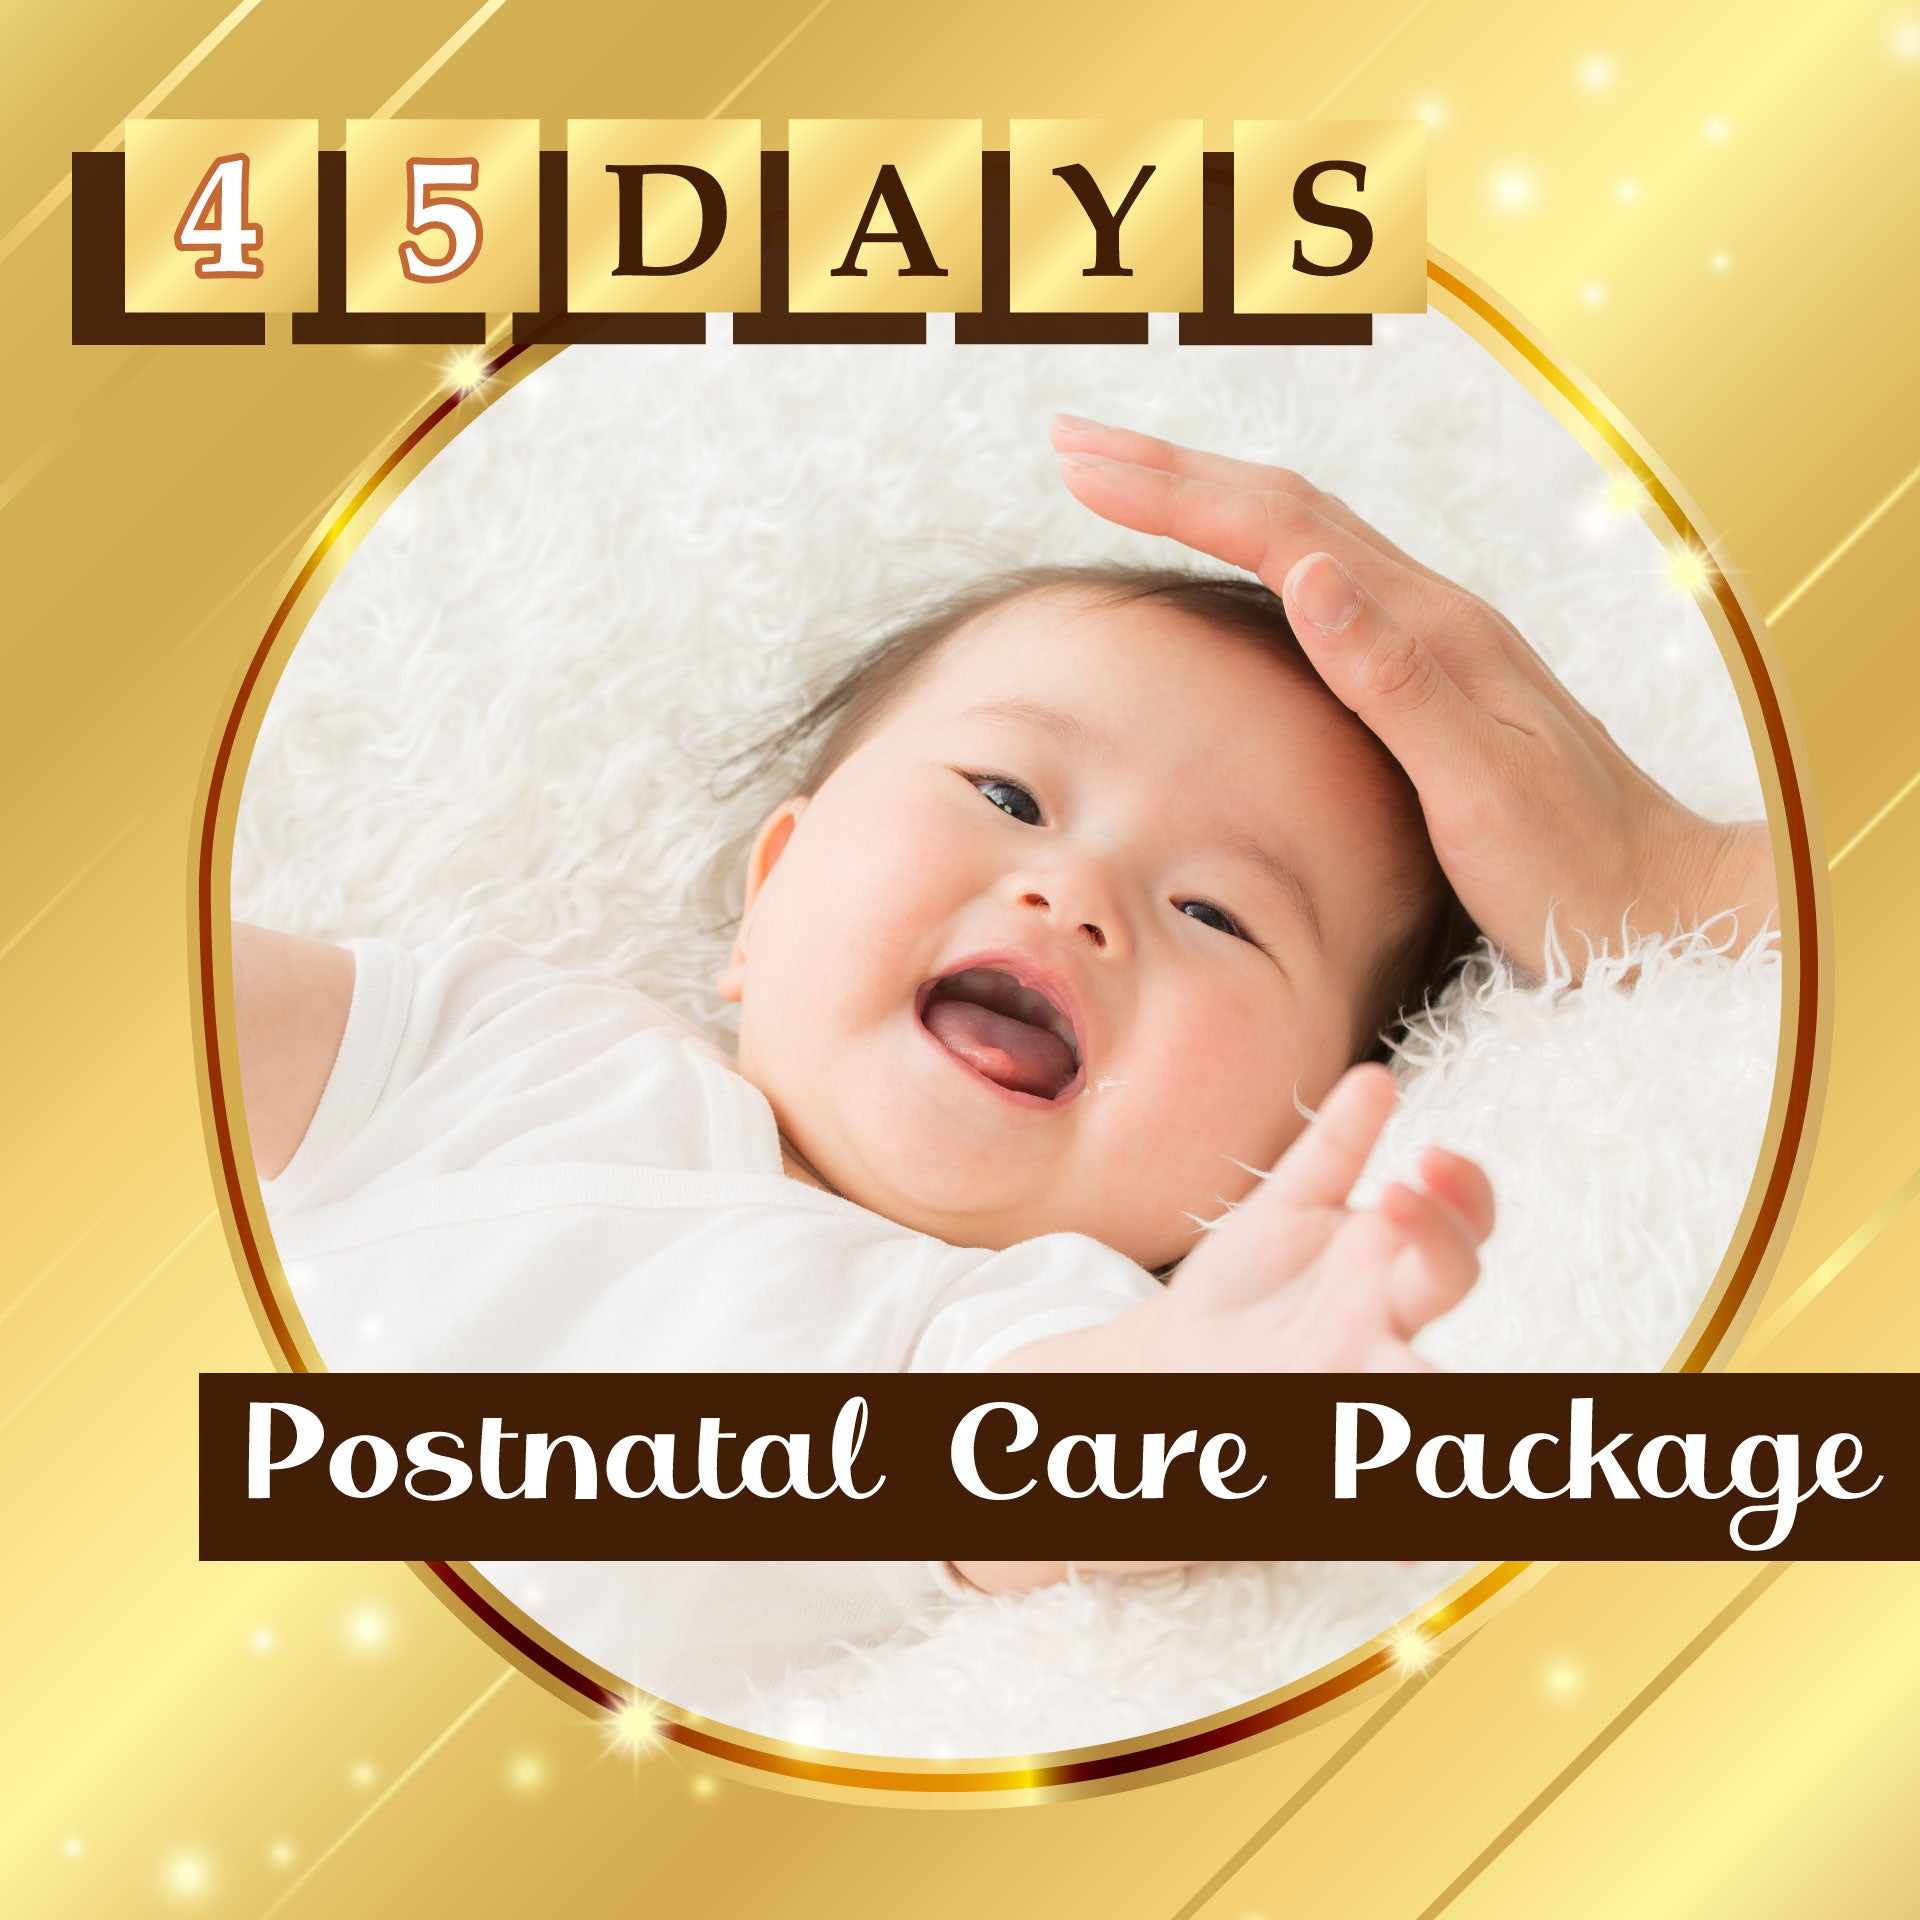 45 Days Postnatal Care Package (23 Boxes of Organic Drip Chicken Essence)